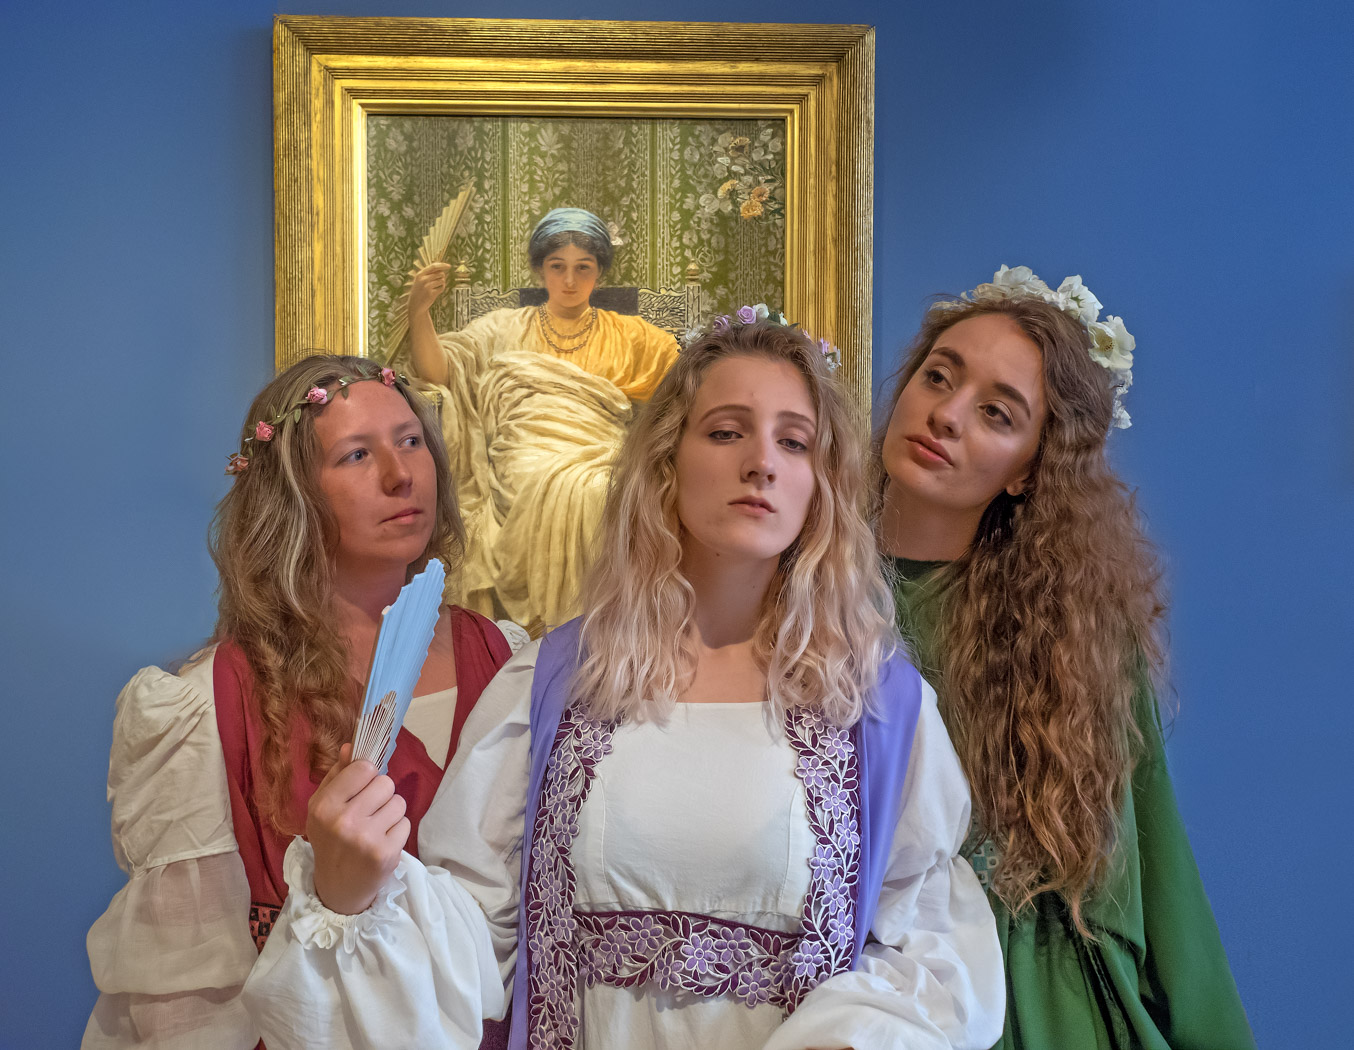 Ellie McCarthy, left, Jenny Jones and Annabelle Gipp, Aesthetic maidens in York Opera's chorus for Patience, pose in front of Aesthetic artist Albert Moore's painting A Reverie at York Art Gallery. Picture: John Saunders by kind permission of York Museums